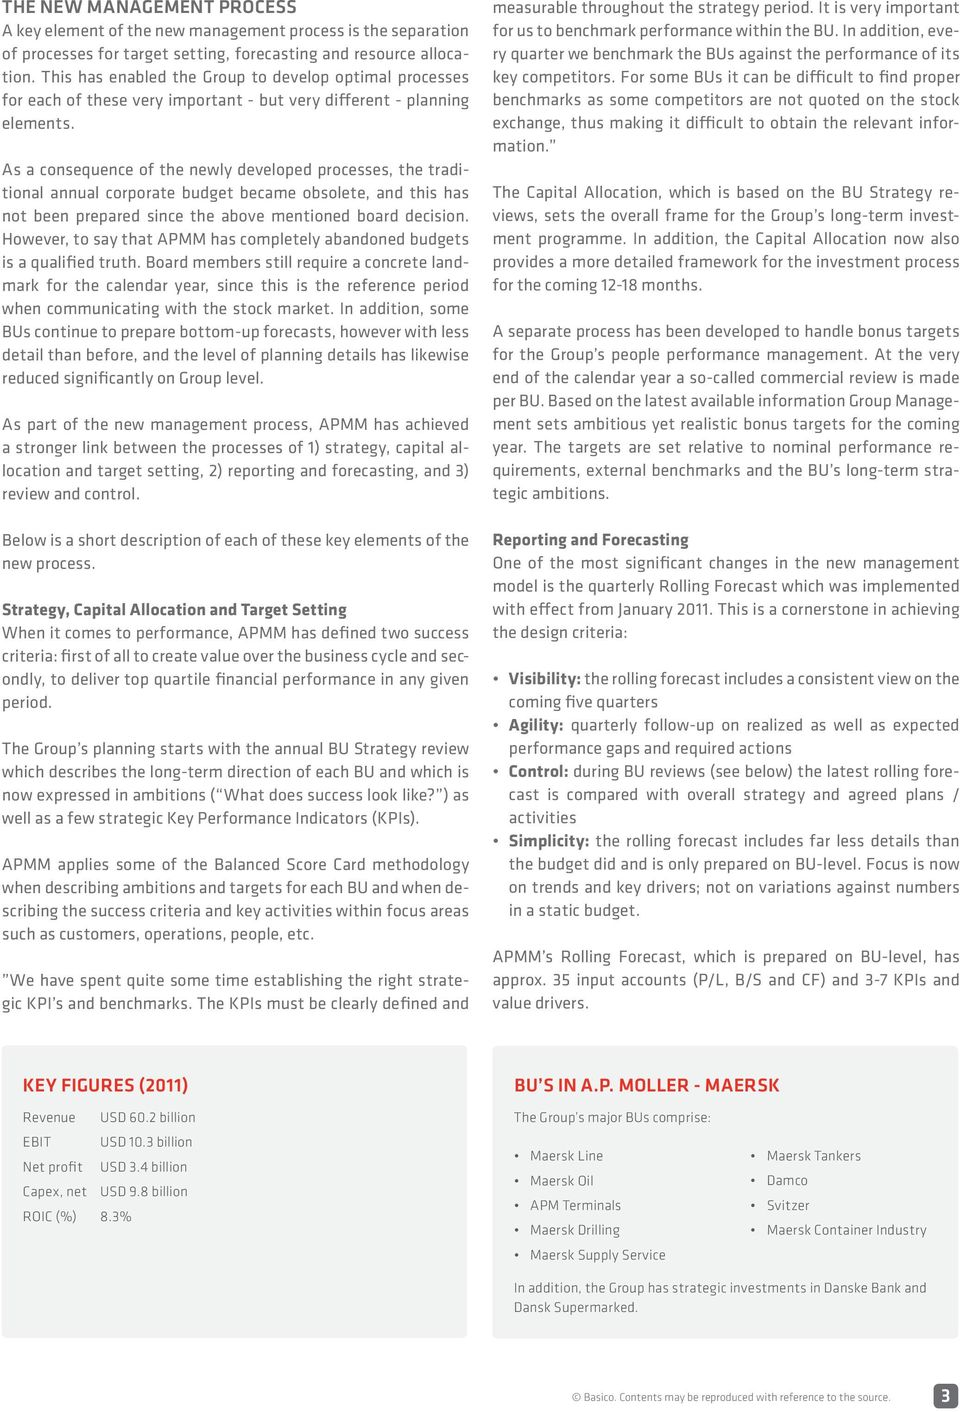 Corporate planning at A P  Moller - Maersk - PDF